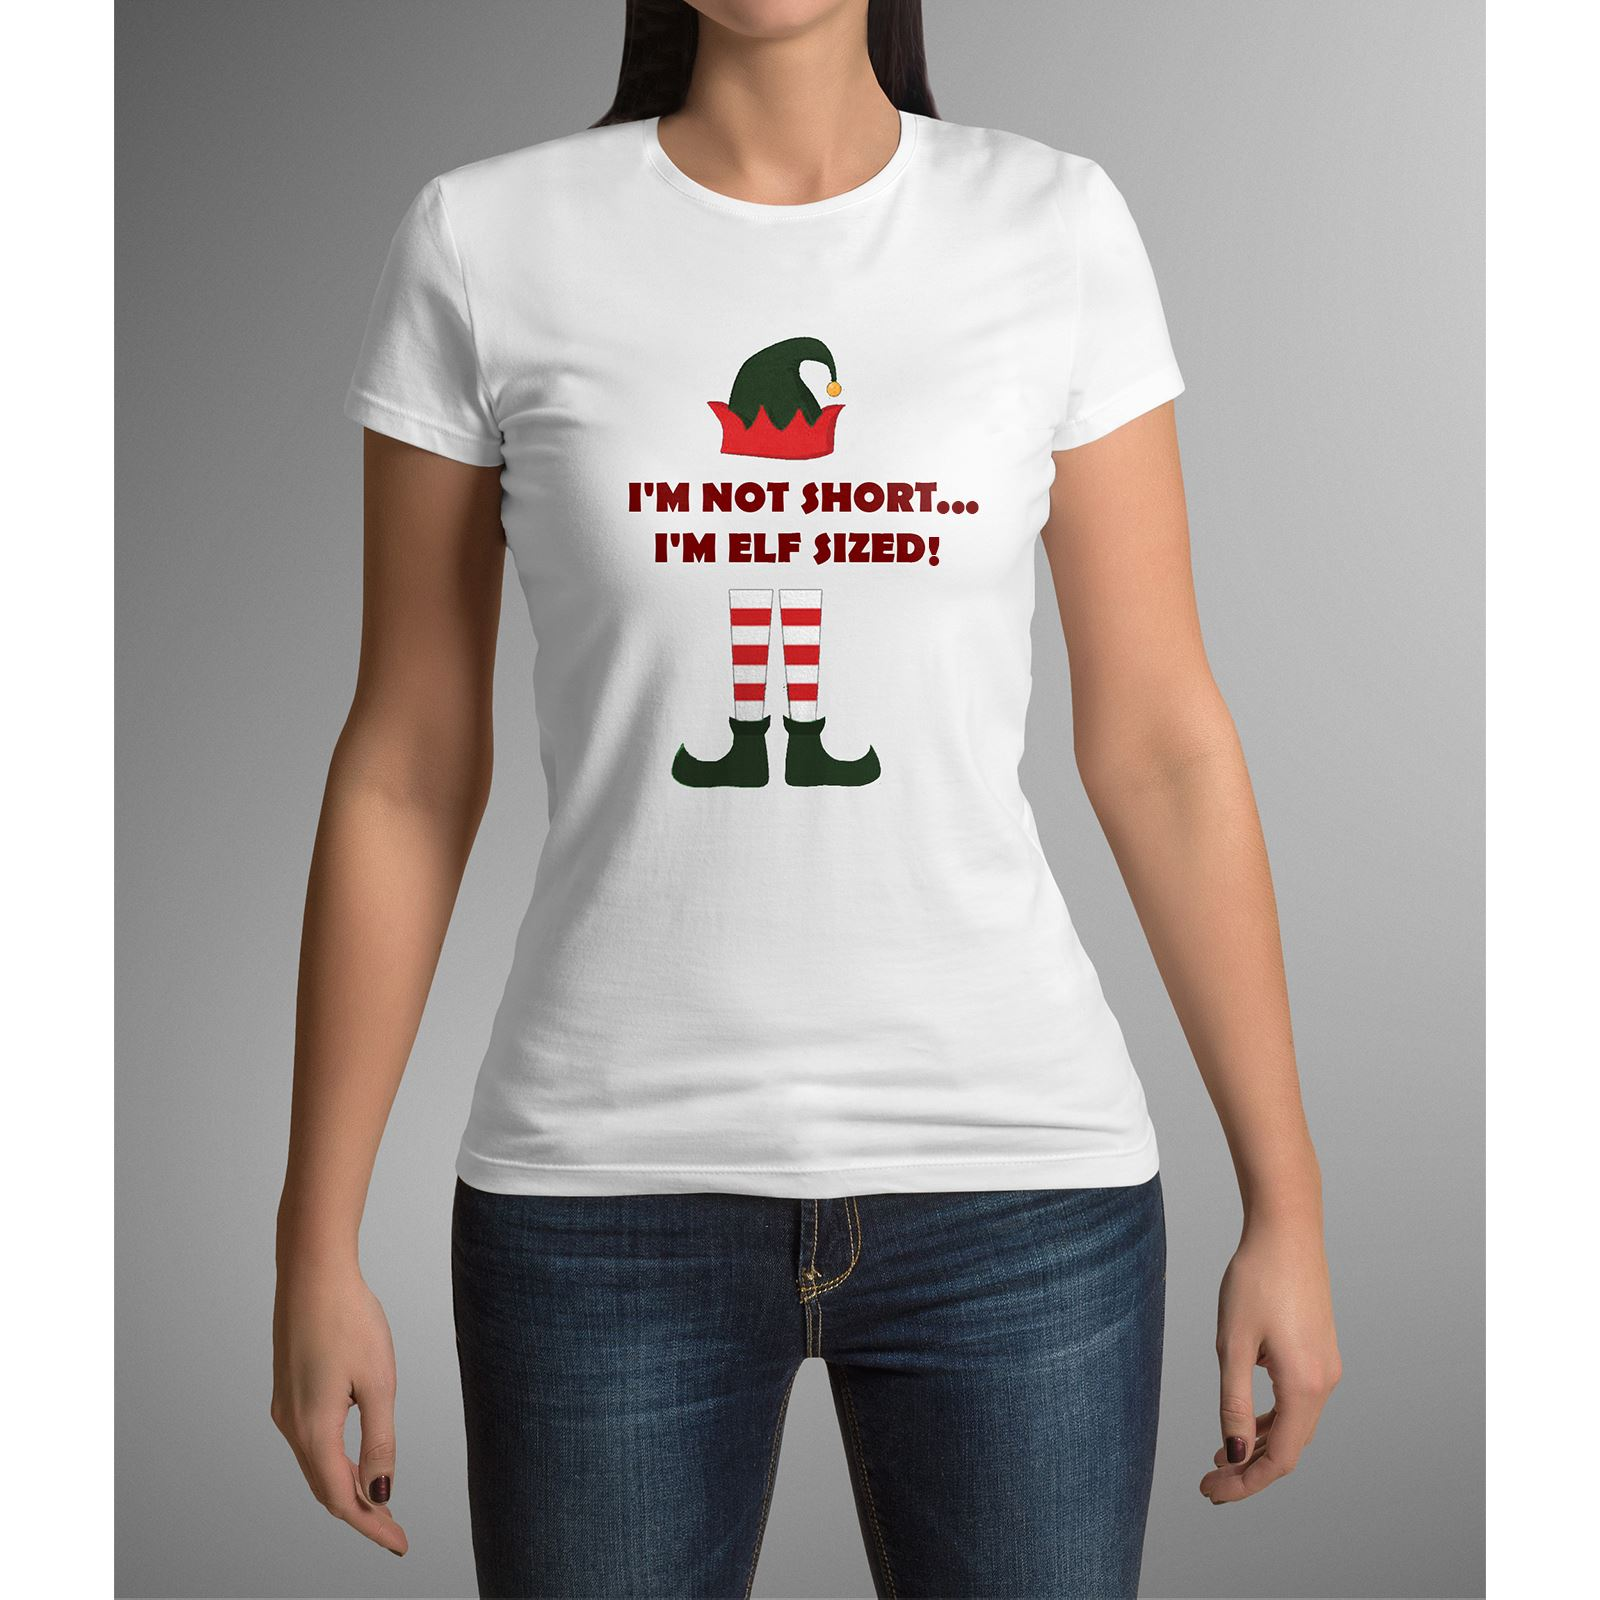 a402fc62 Christmas Tee Shirts For Ladies